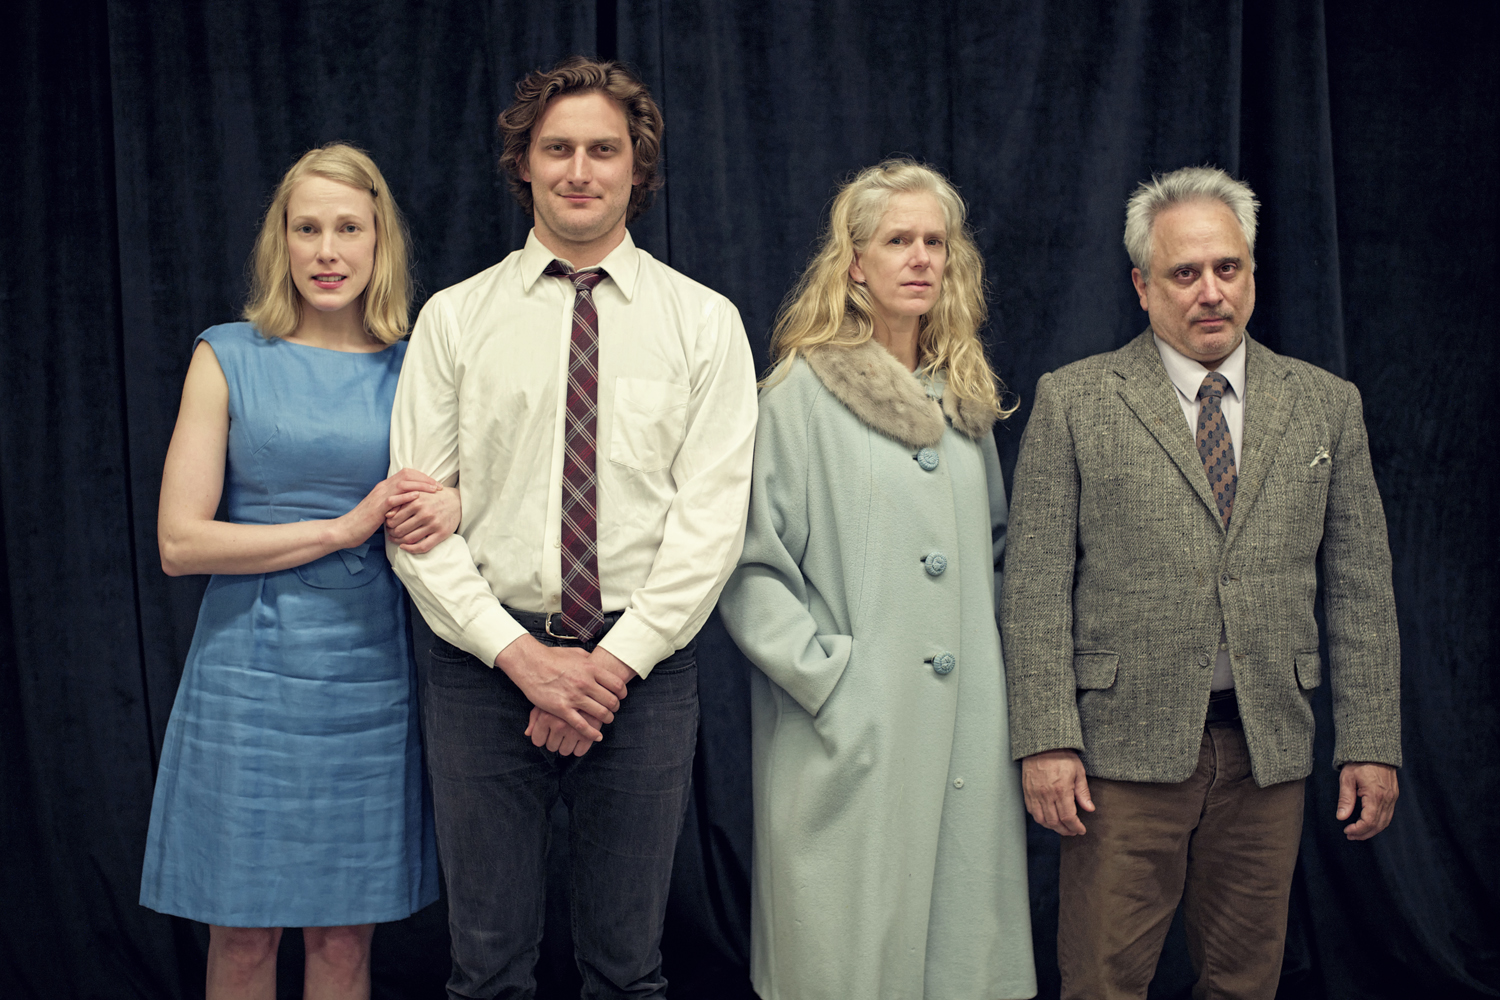 The Cast of Who's Afraid of Virginia Woolf?